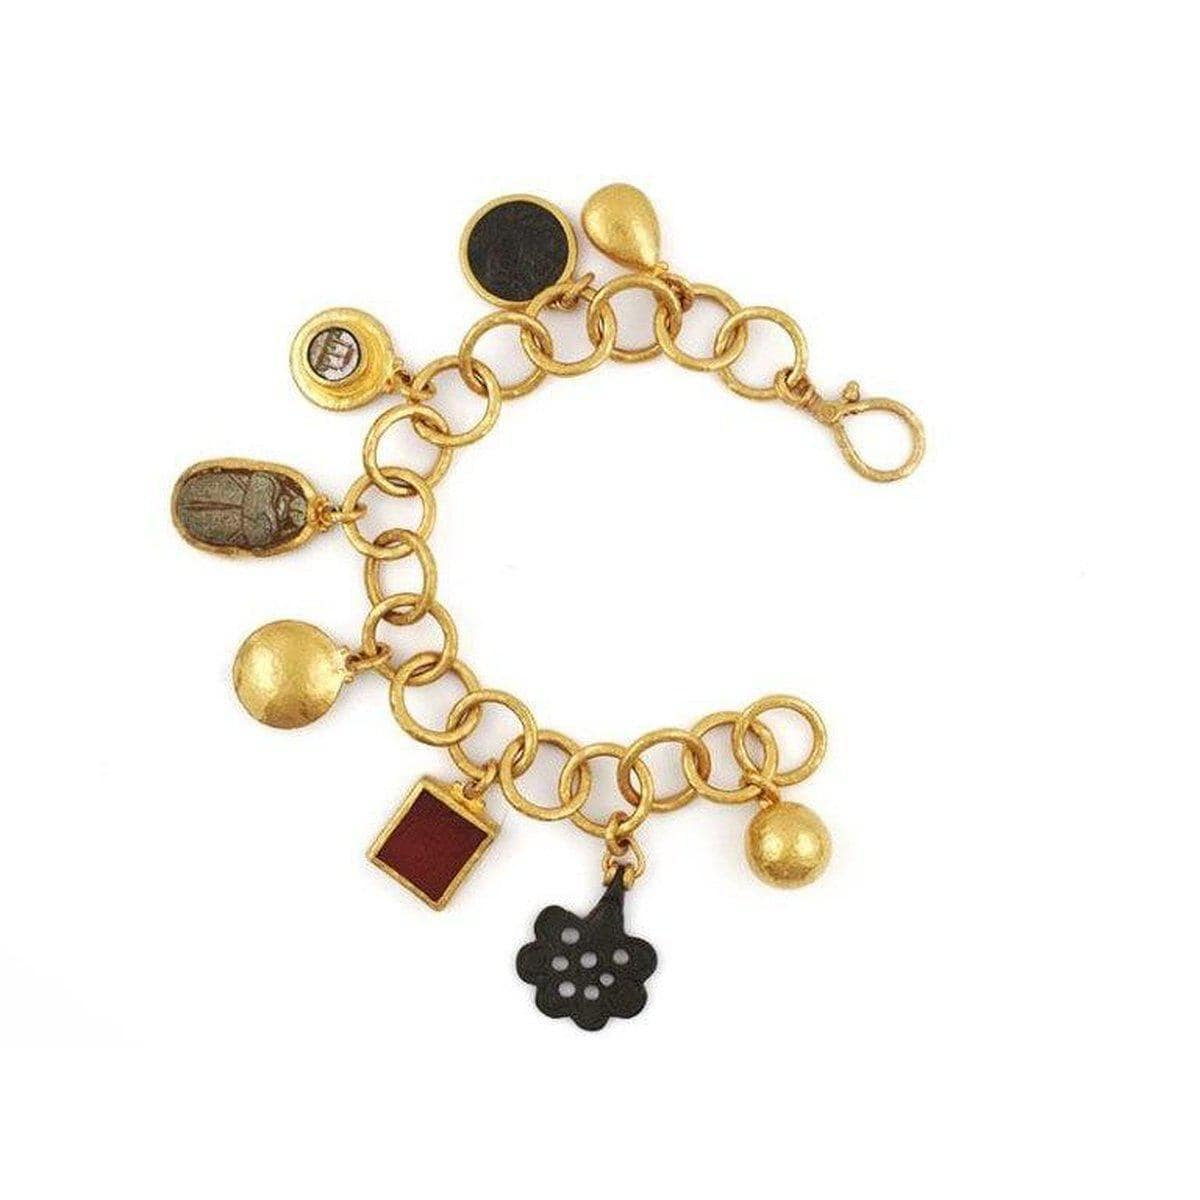 Antiquities 24K Gold Multi Stone Bracelet - CHB-U17858-CCT-GURHAN-Renee Taylor Gallery